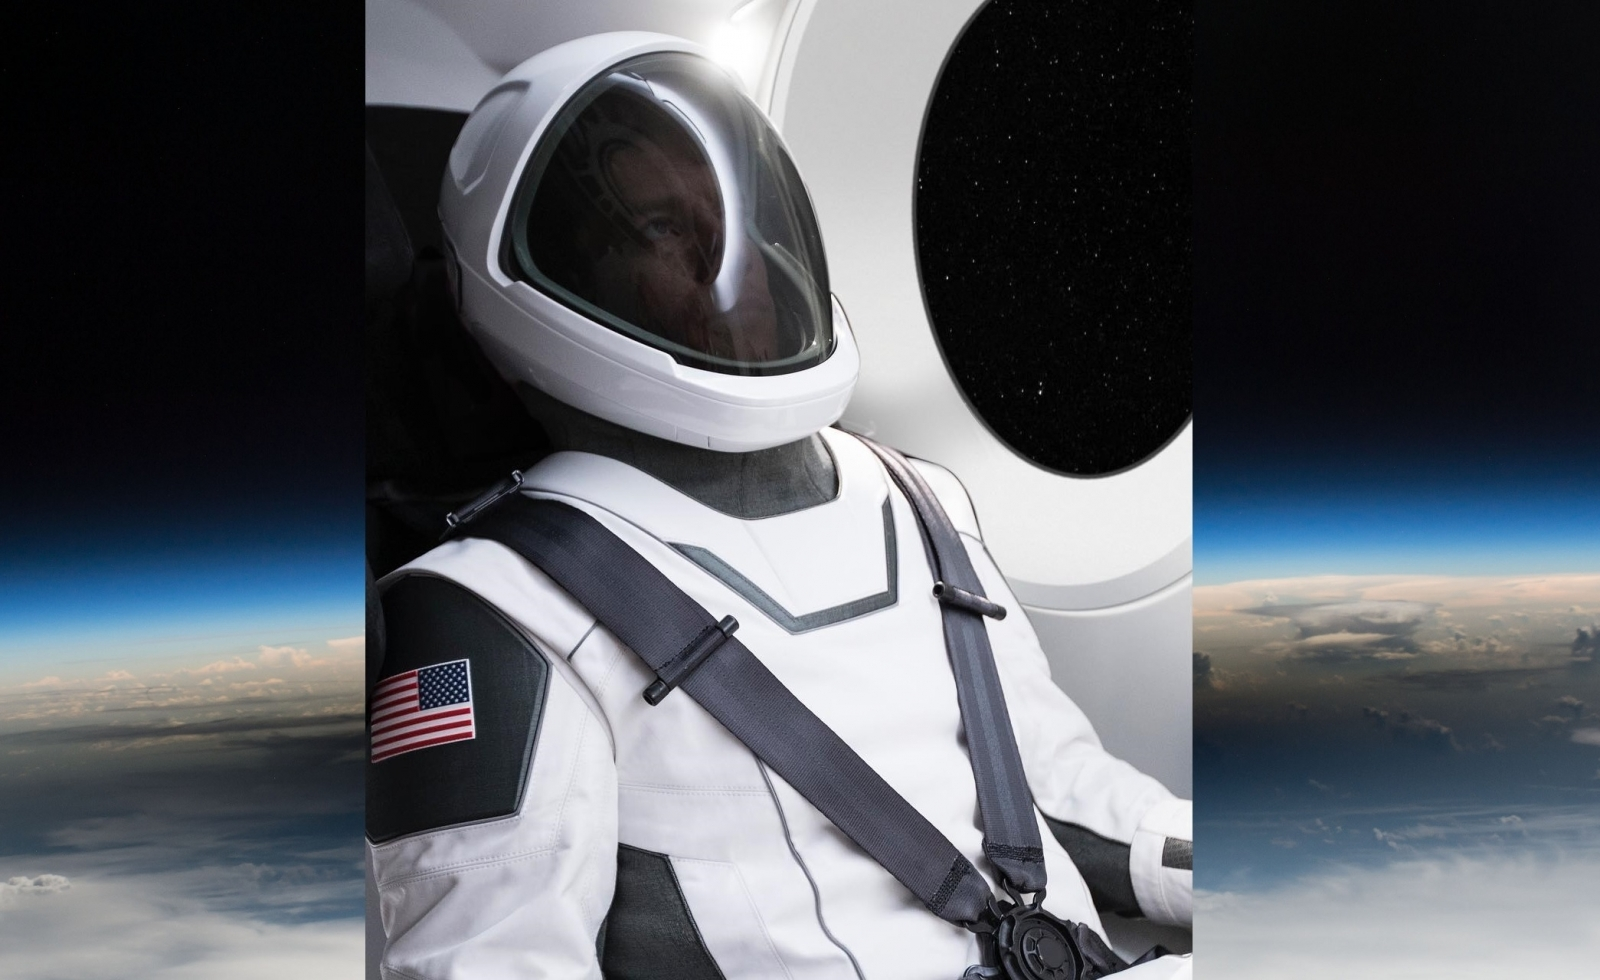 Elon Musk Shows Off First SpaceX Spacesuit